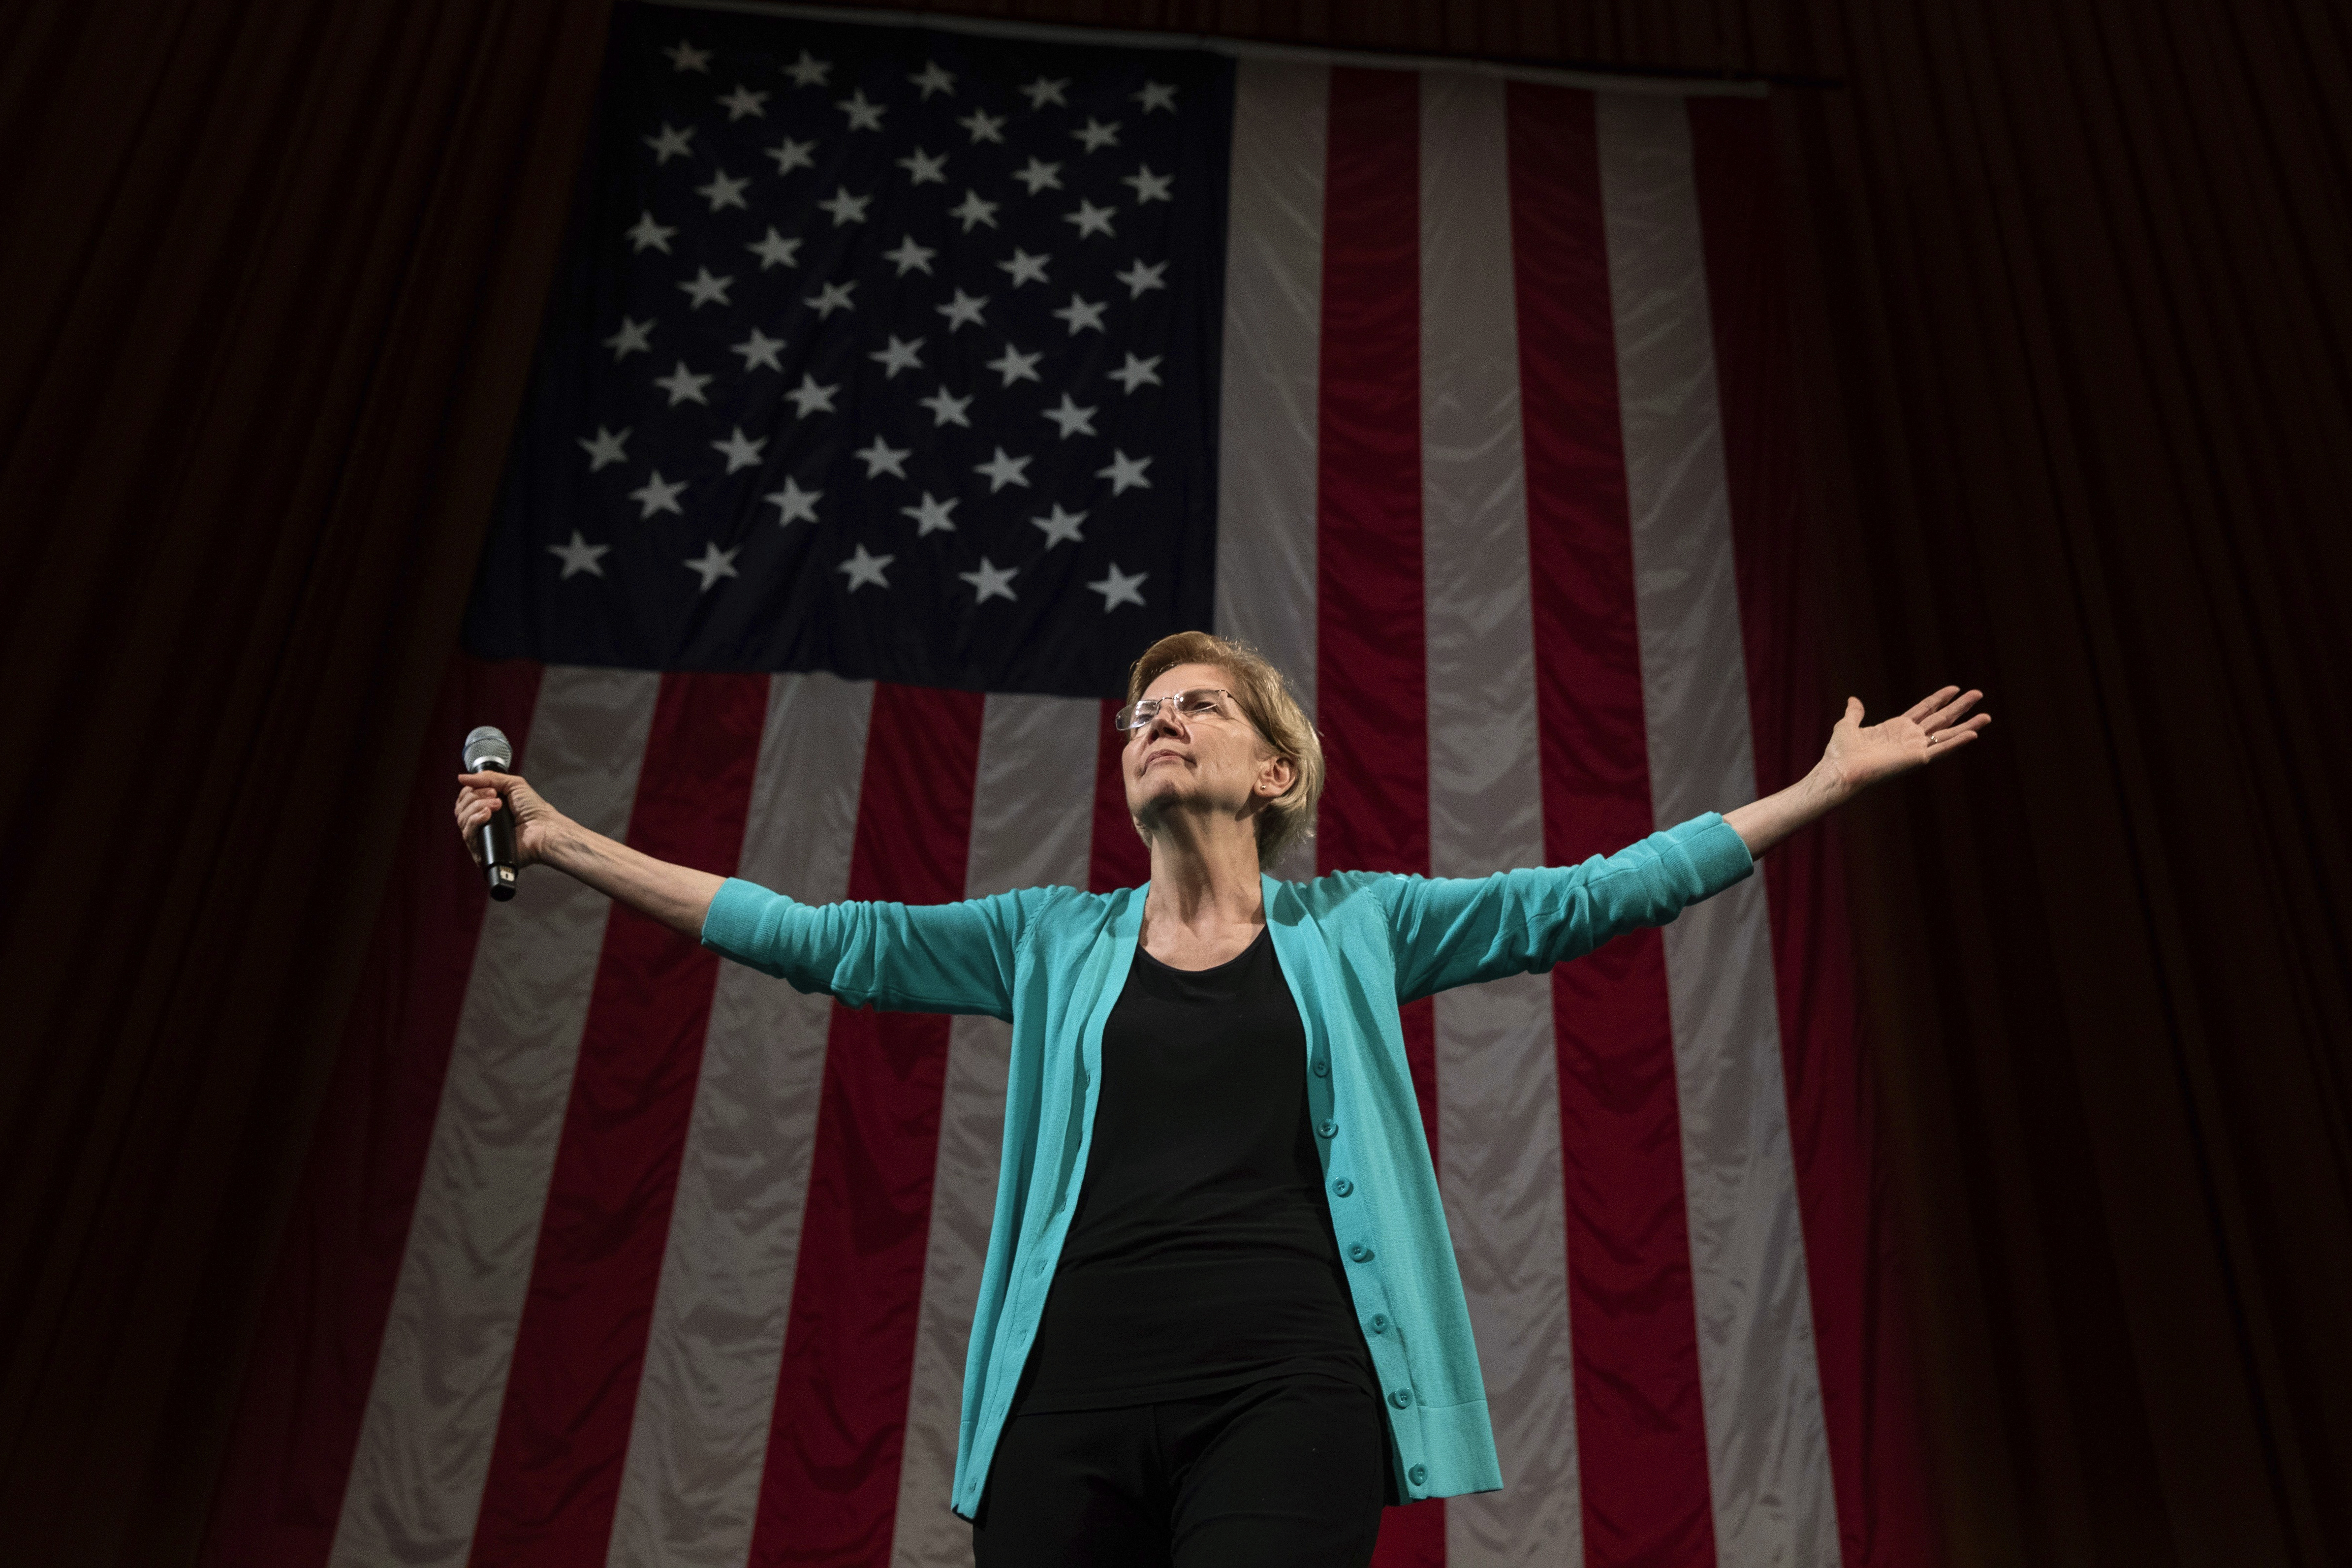 In this June 28, 2019 photo, Democratic presidential candidate Sen. Elizabeth Warren, D-Mass., arrives at Chicago's Auditorium Theater at Roosevelt University for a Chicago Town Hall event.